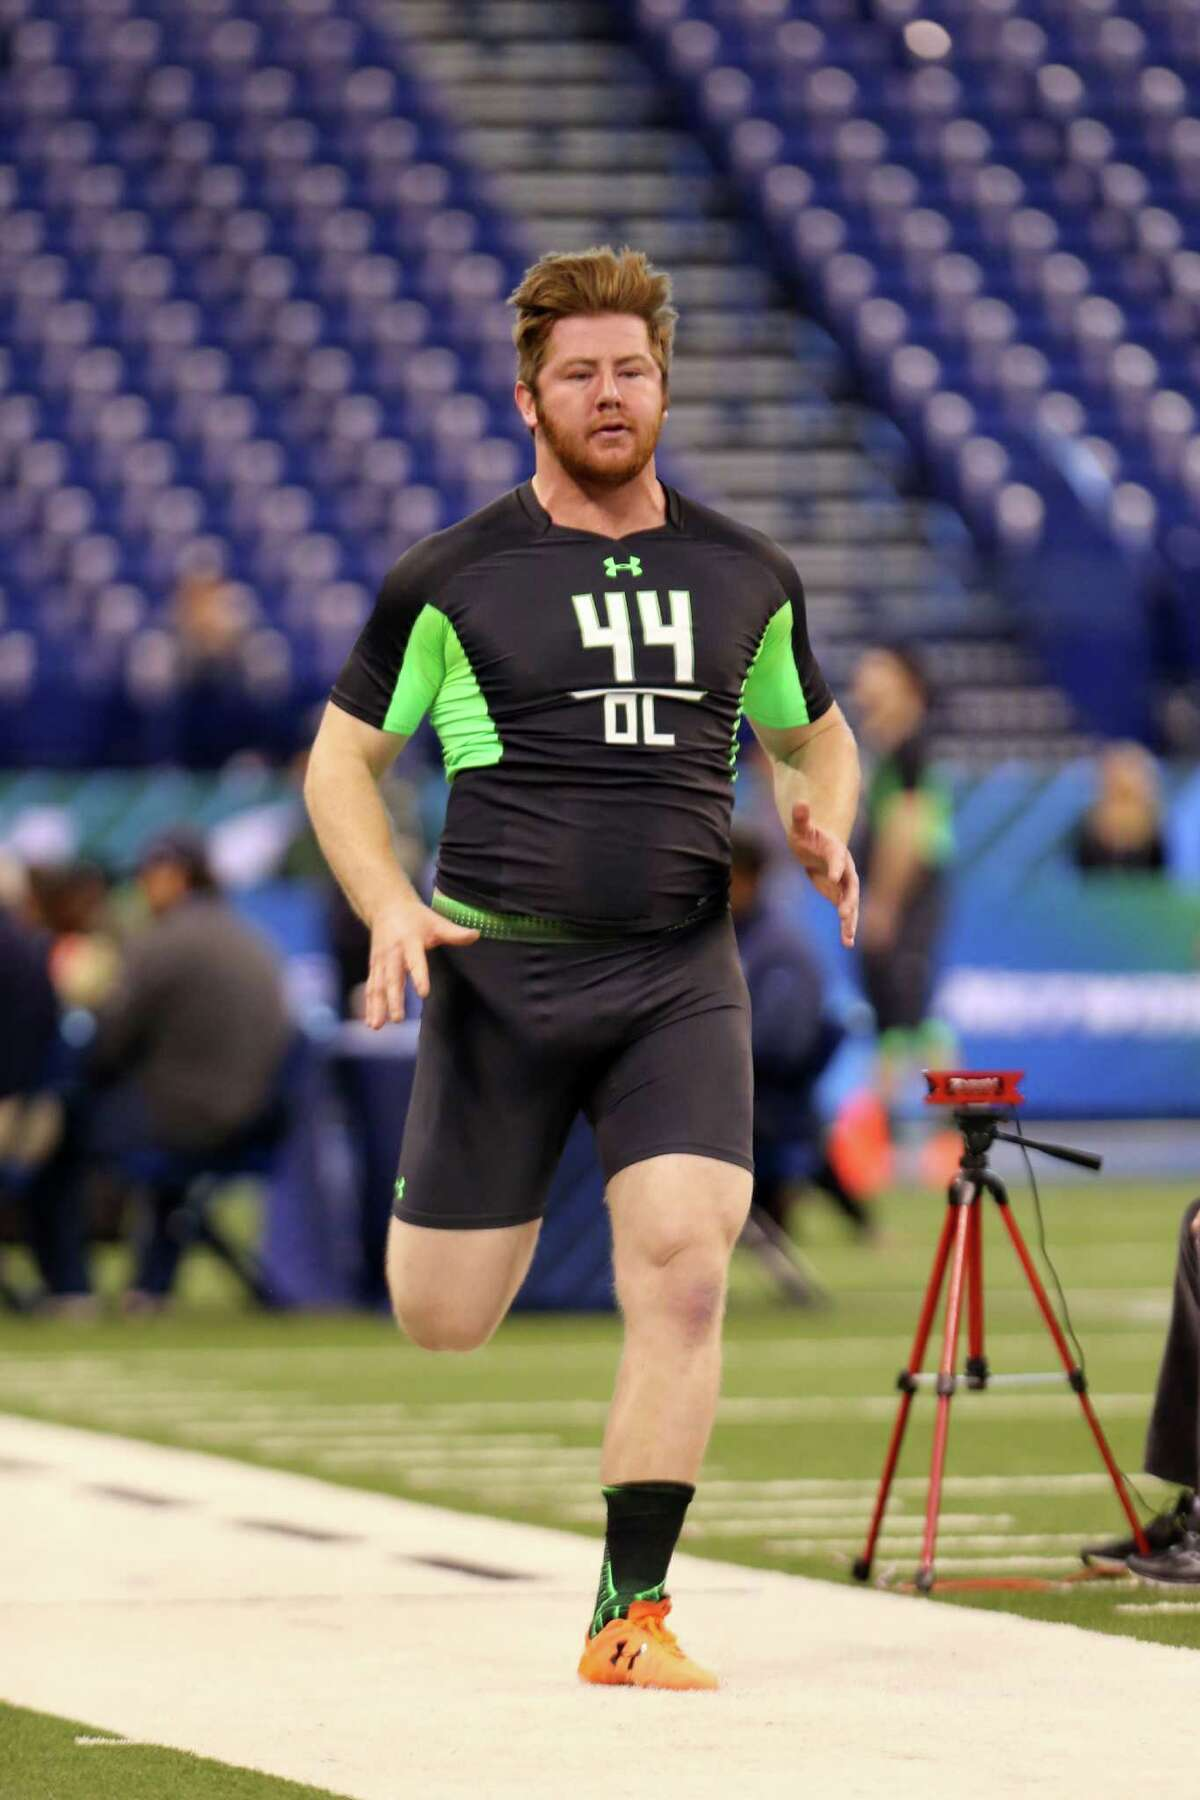 North Carolina State offensive lineman Joe Thuney during the 40 yard dash at the NFL football scouting combine Friday, Feb. 26, 2016, in Indianapolis.